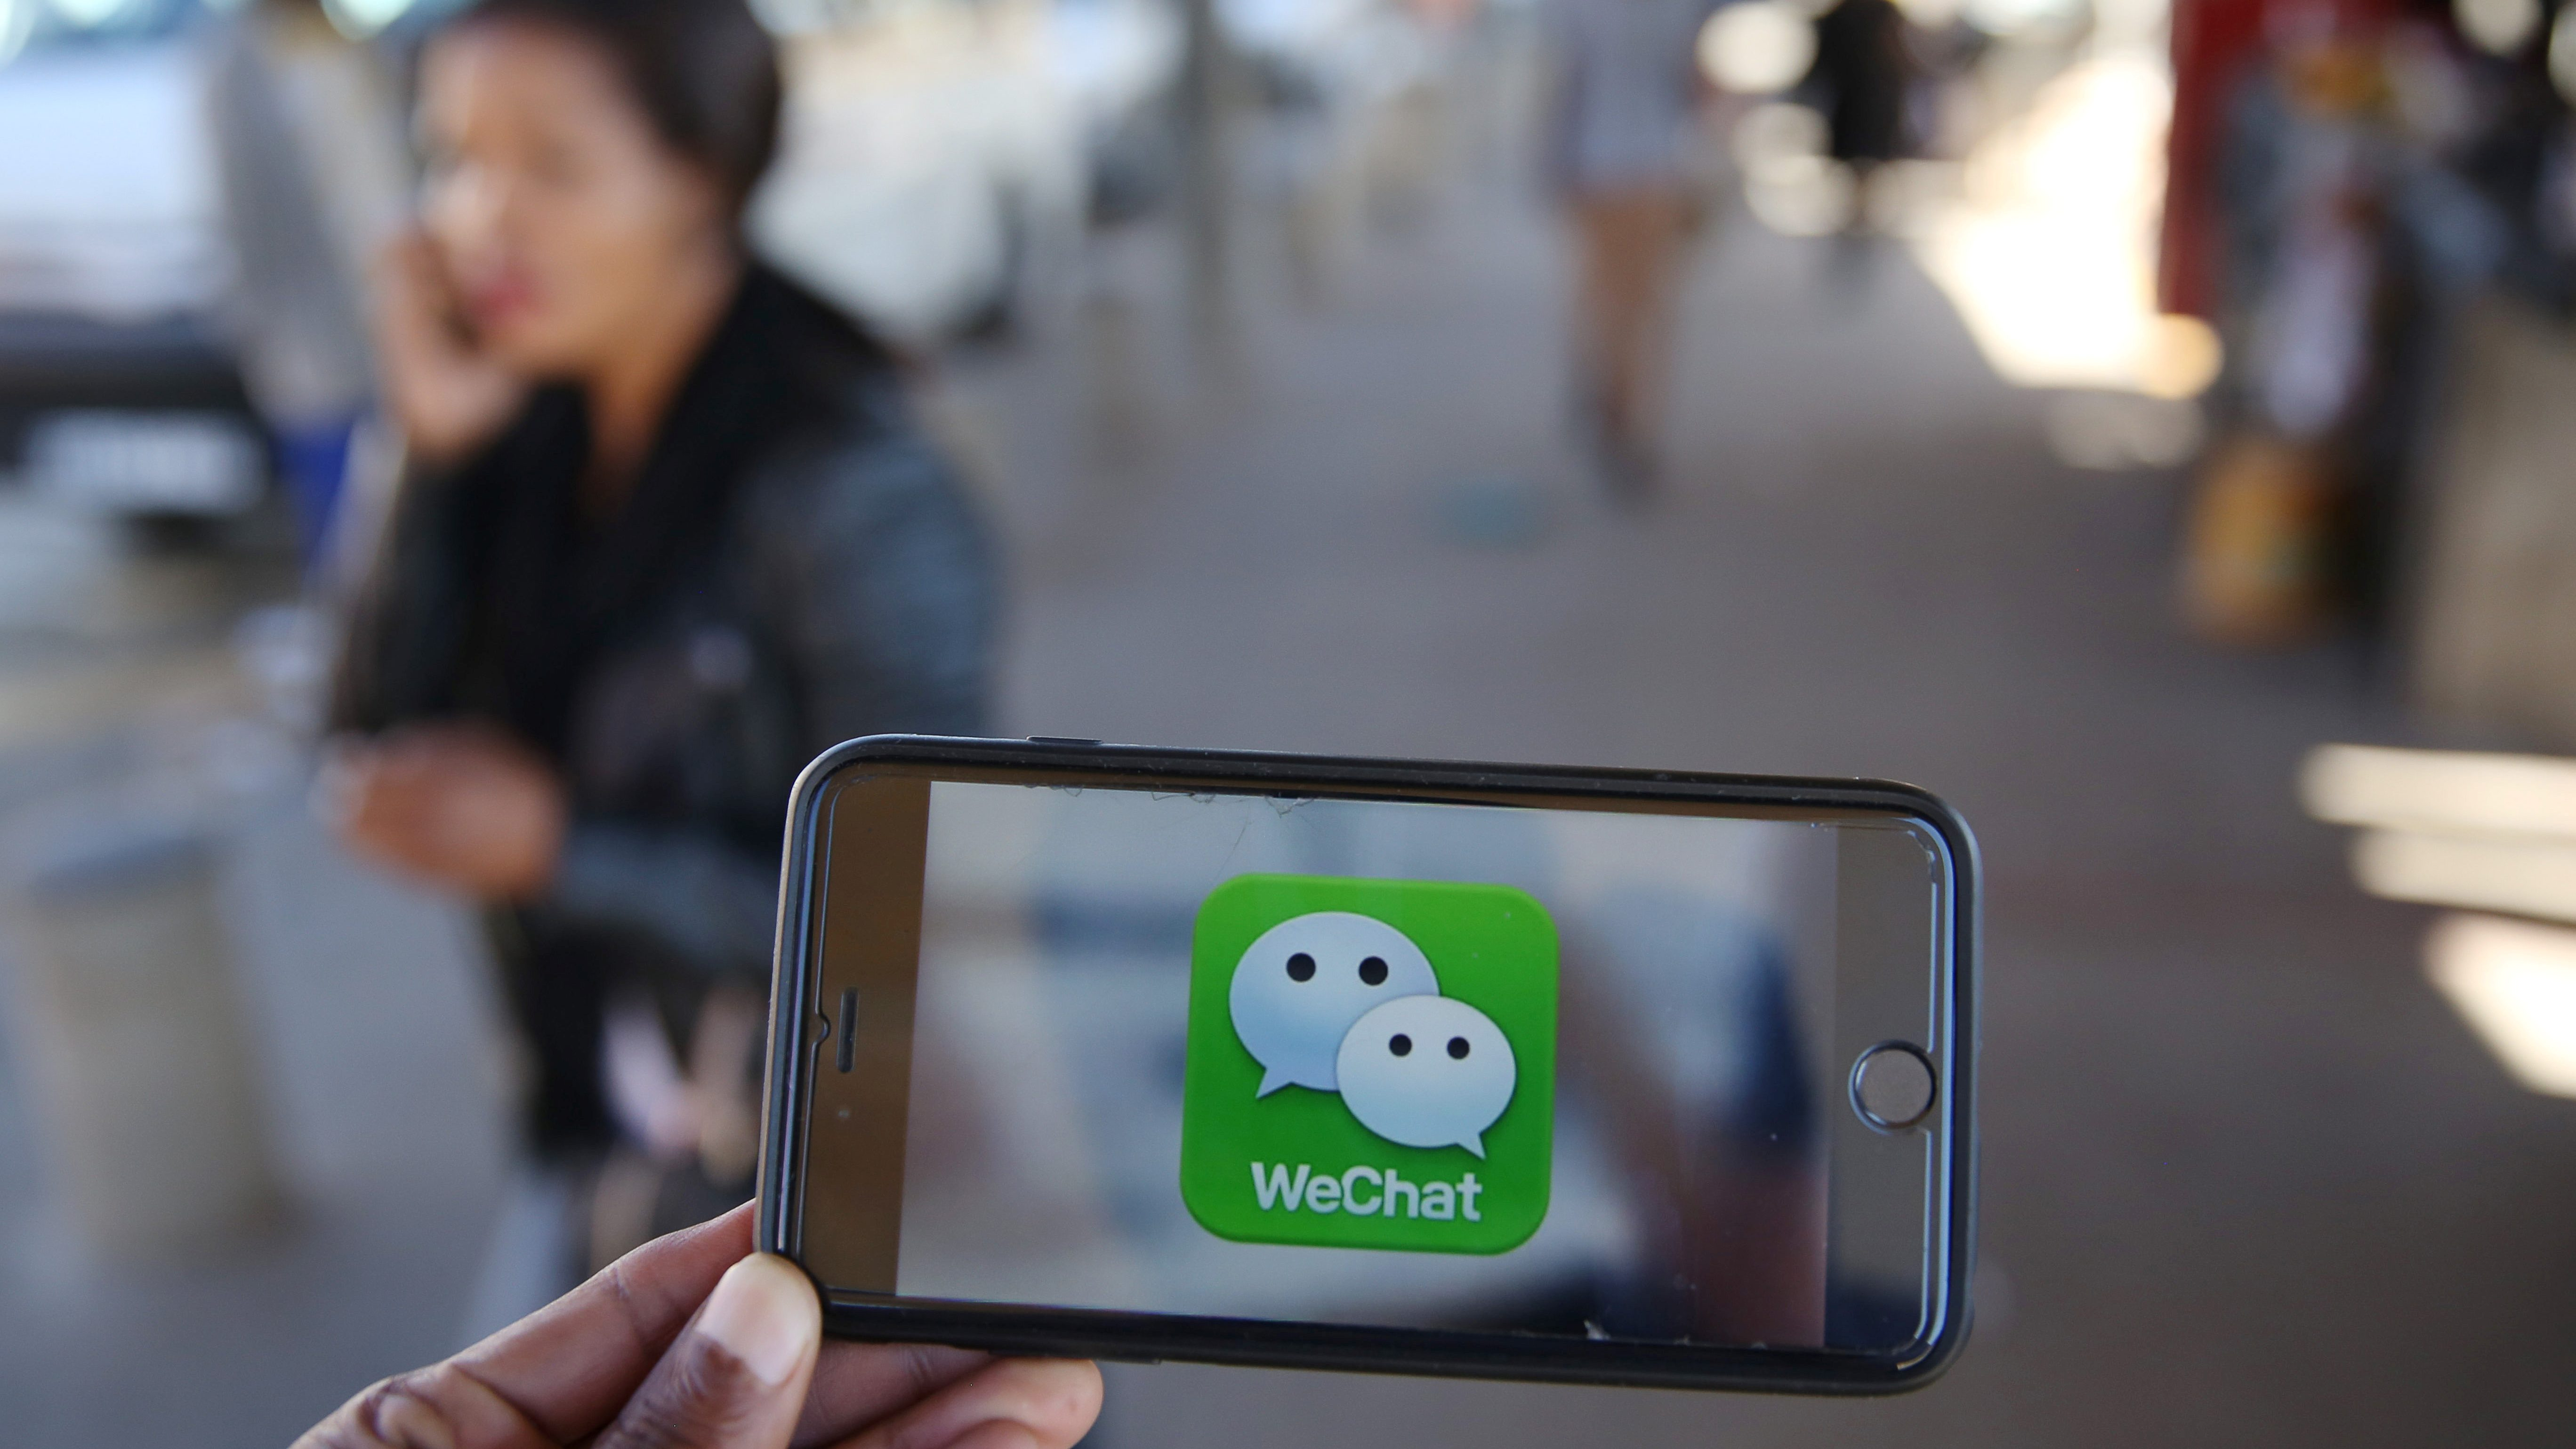 A WeChat logo is displayed on a mobile phone as a woman walks past as she talks on her mobile phone at a taxi rank in this picture illustration taken July 21, 2016. Picture taken July 21, 2016. REUTERS/Siphiwe Sibeko/Illustration - S1AETRAERSAA